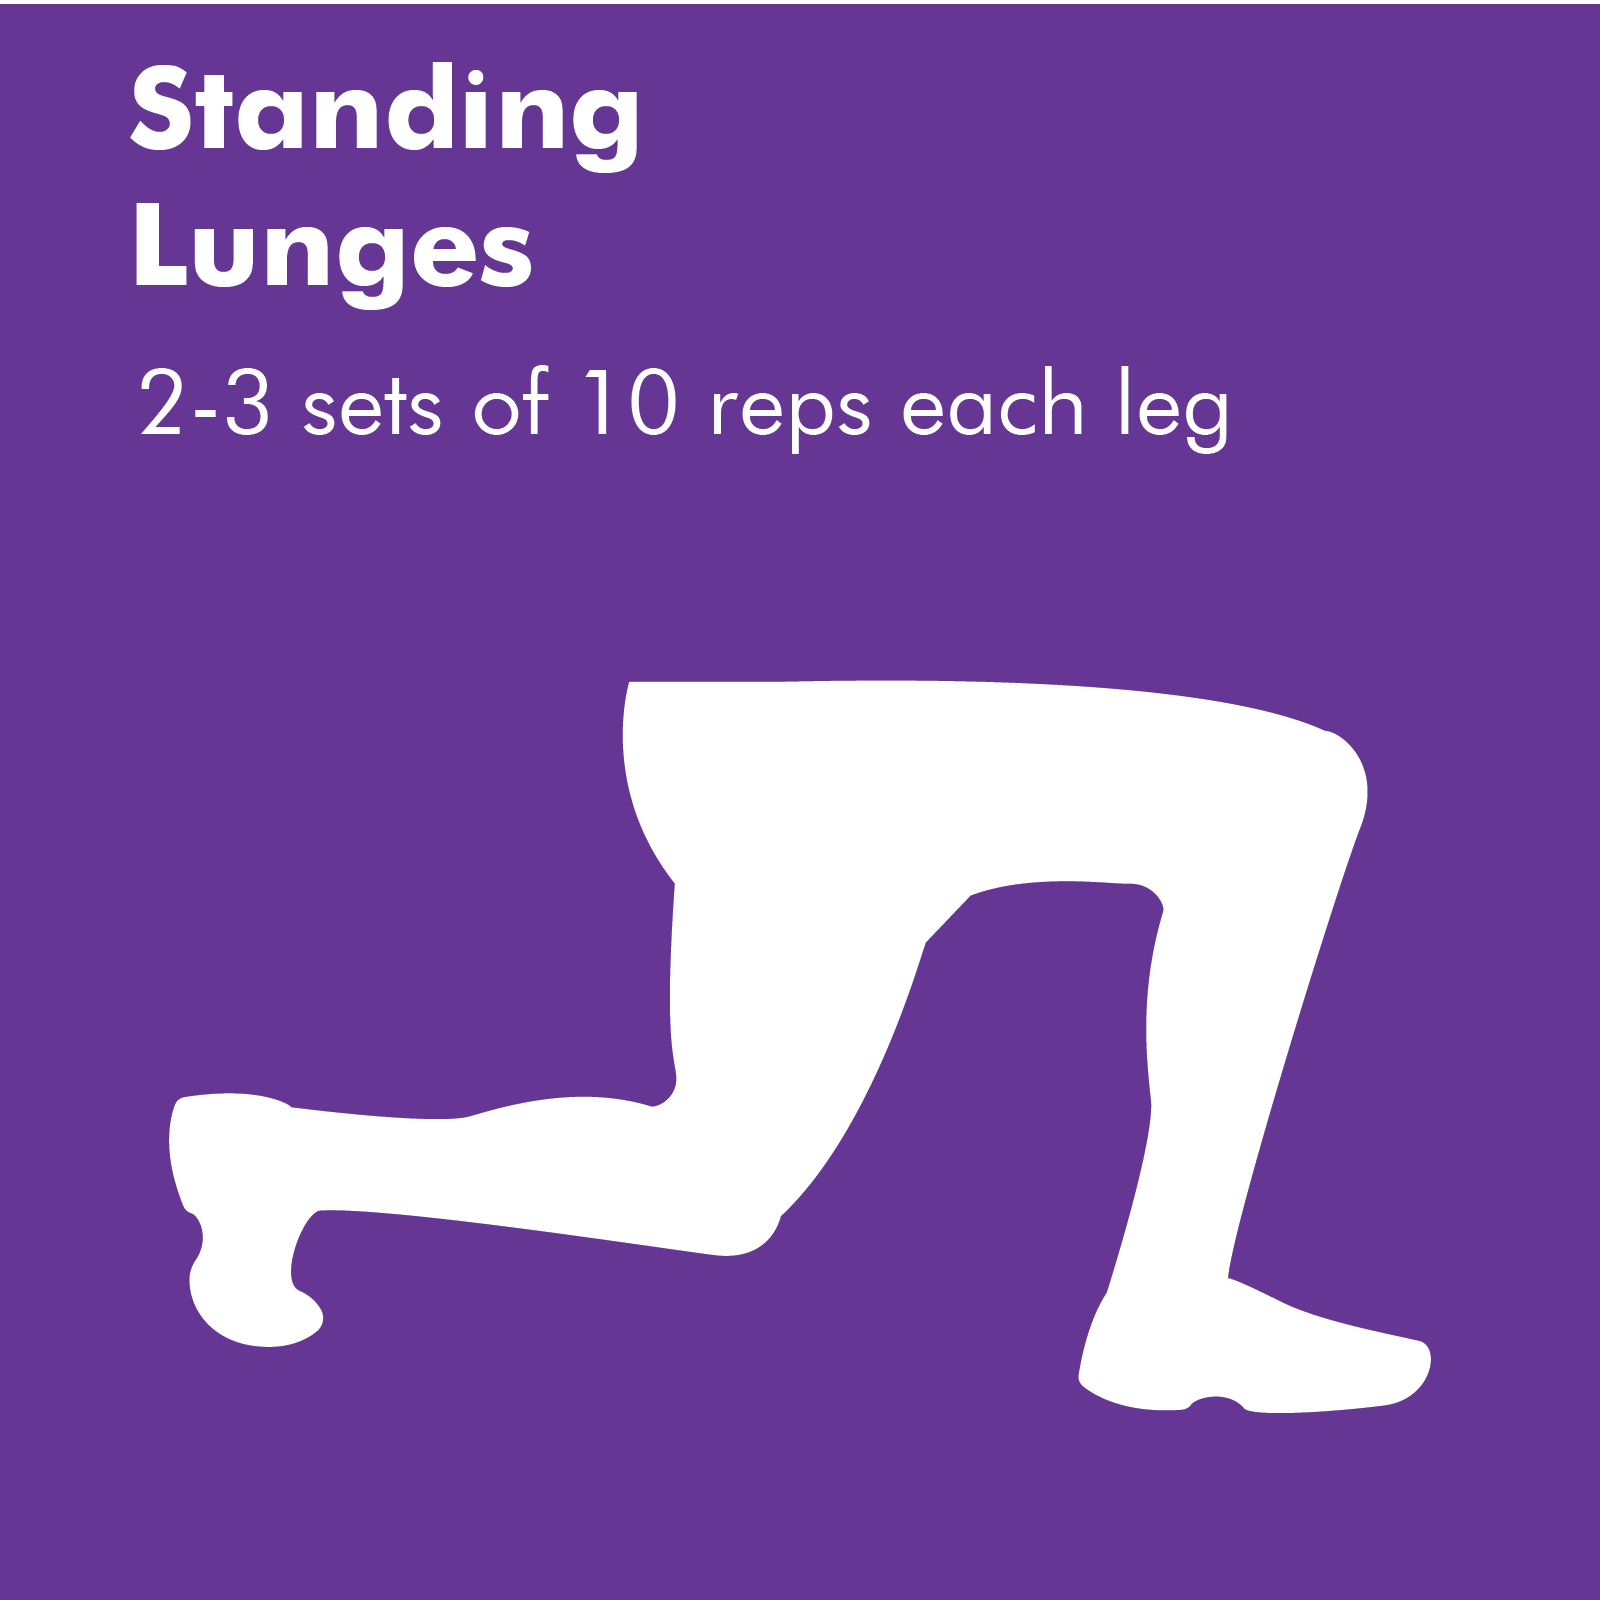 Lunges are easy to do but, can give you quite a workout if done correctly. You start by standing up straight then stepping out with one leg until your back leg is bent parallel to the ground. Alternate legs between reps.